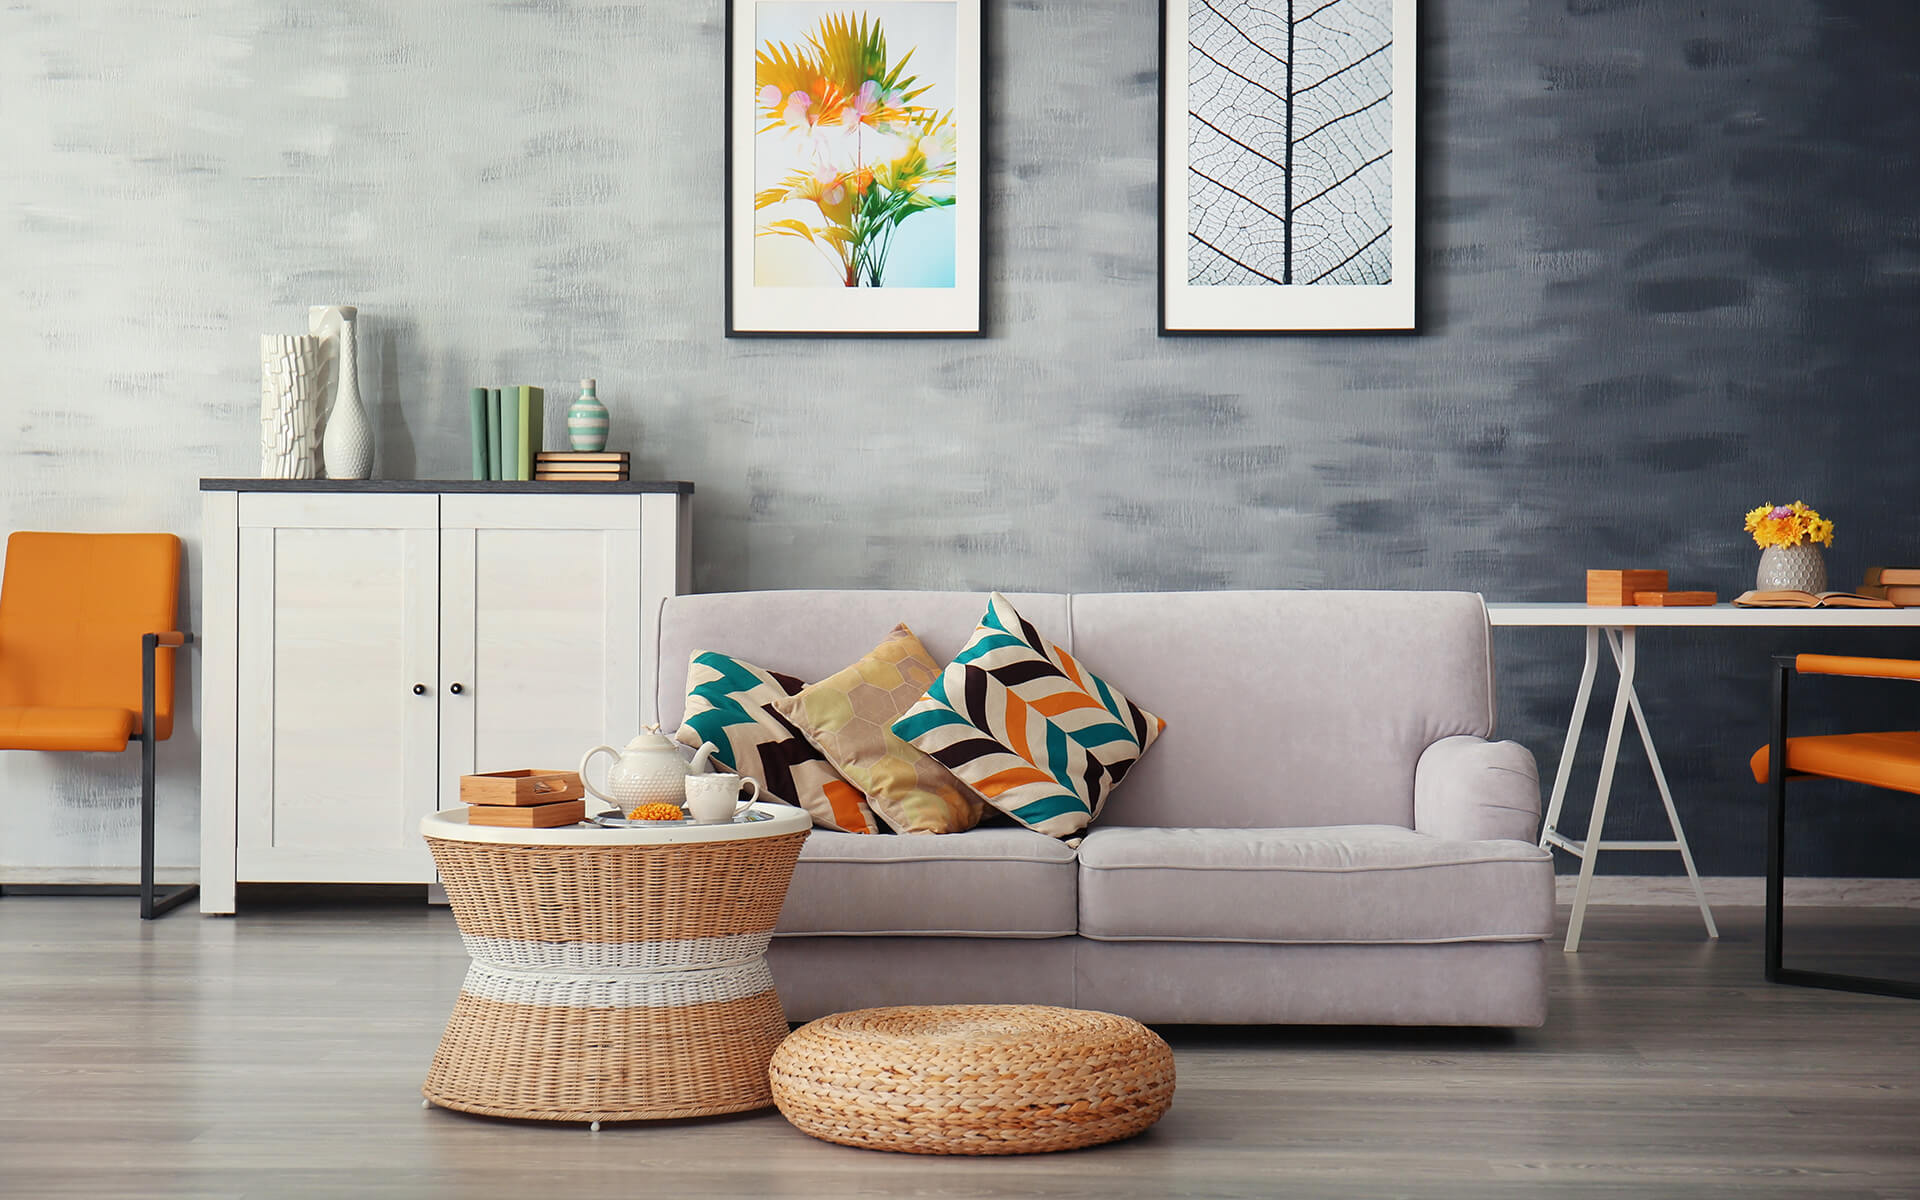 http://renowise.bold-themes.com/house-painting/wp-content/uploads/sites/6/2018/09/post_03.jpg